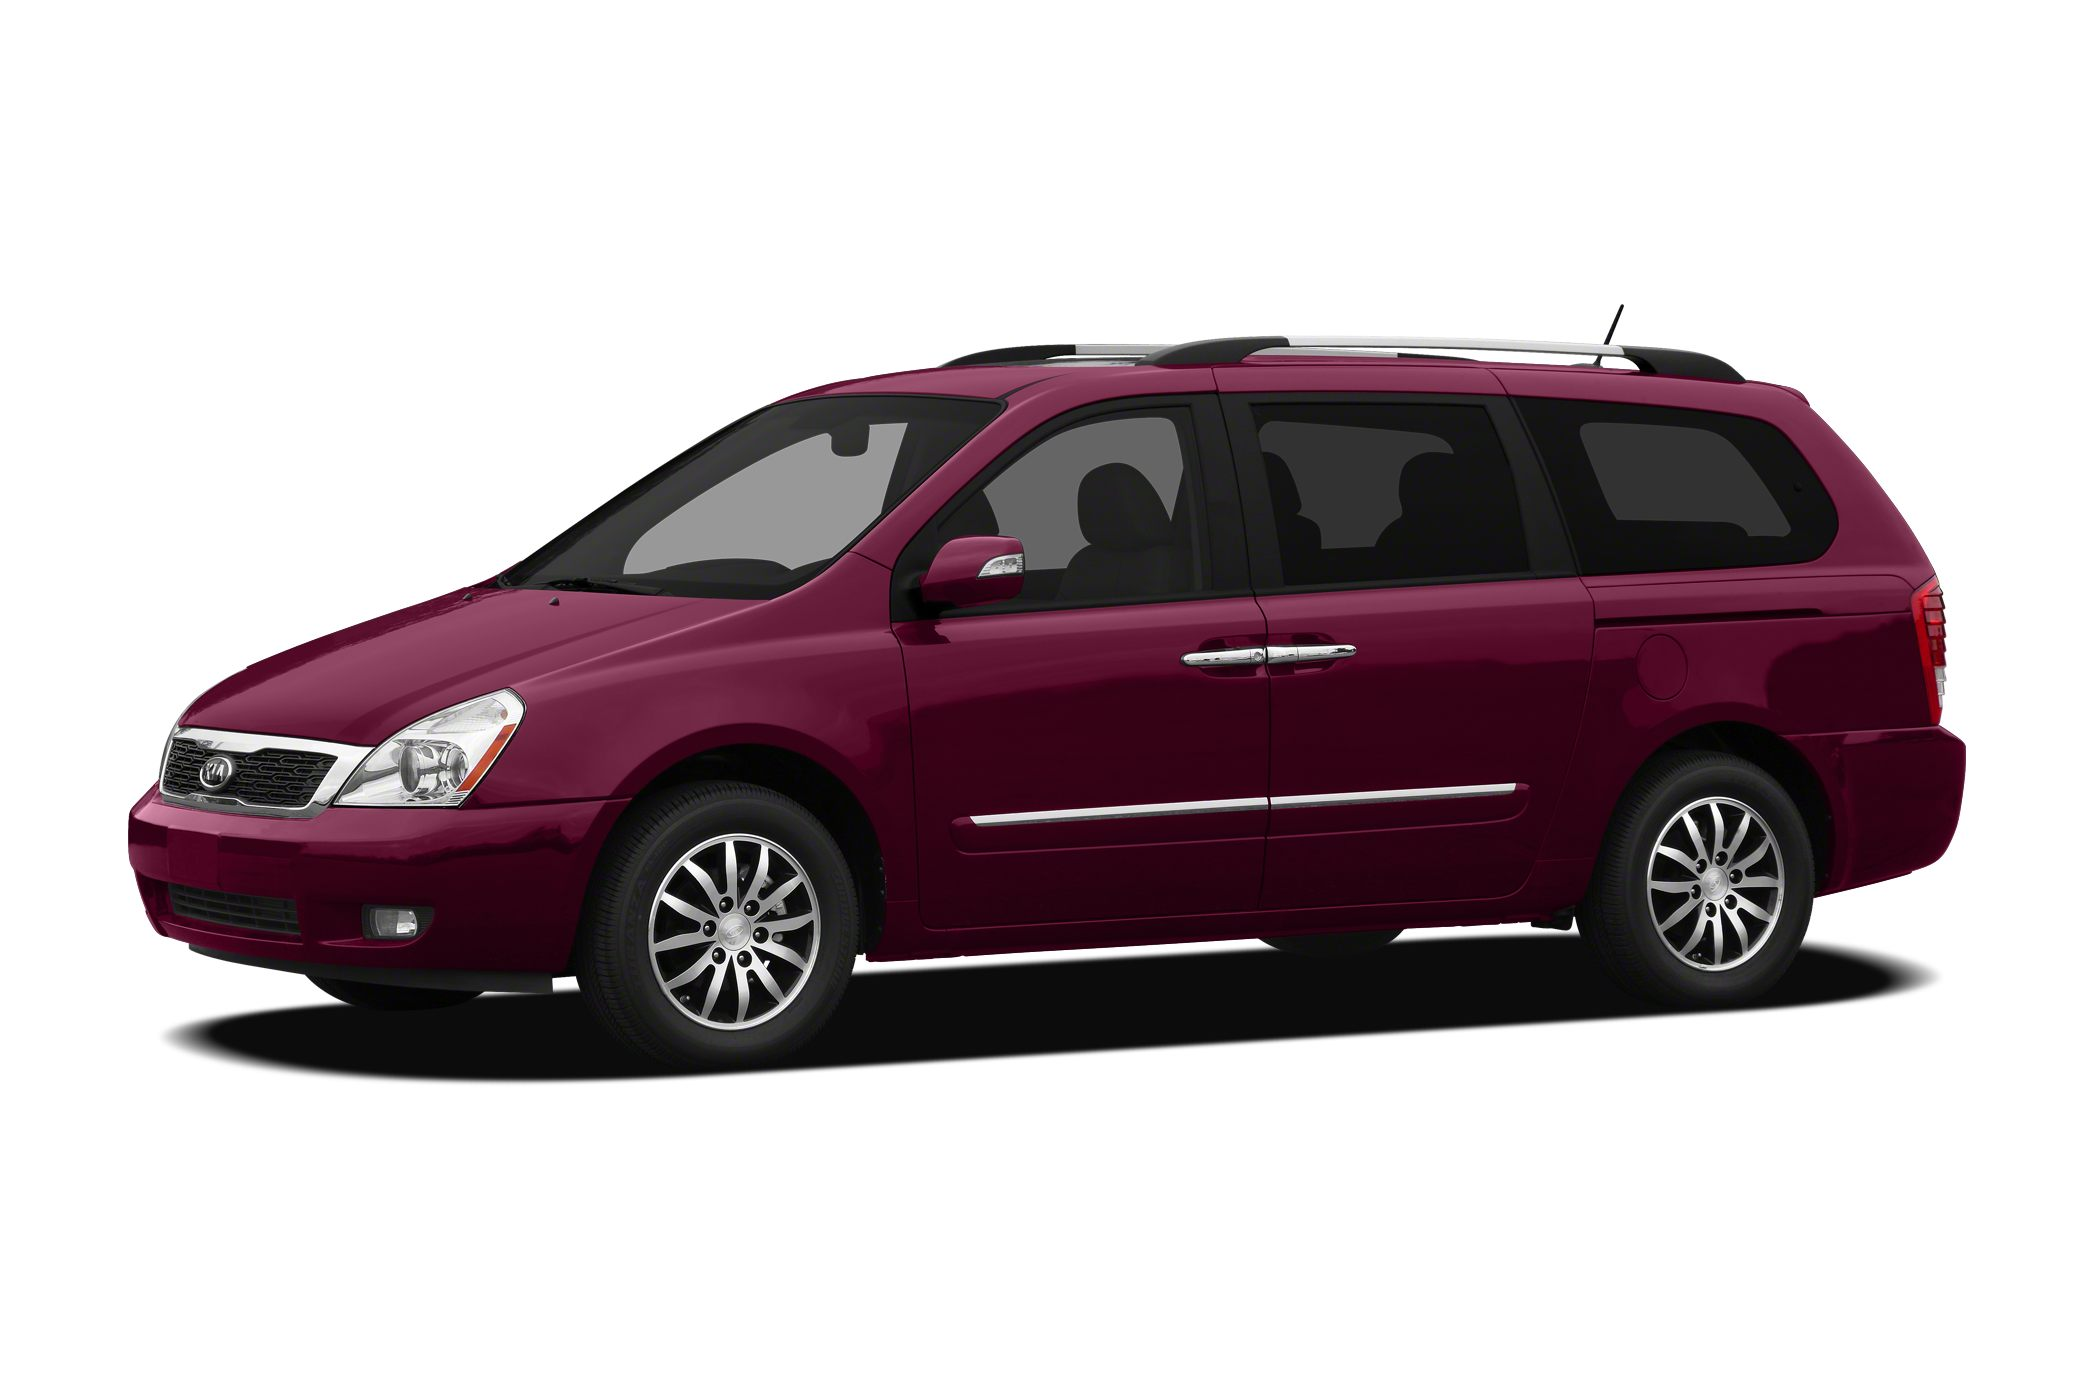 2012 Kia Sedona LX Minivan for sale in Johnstown for $15,490 with 52,580 miles